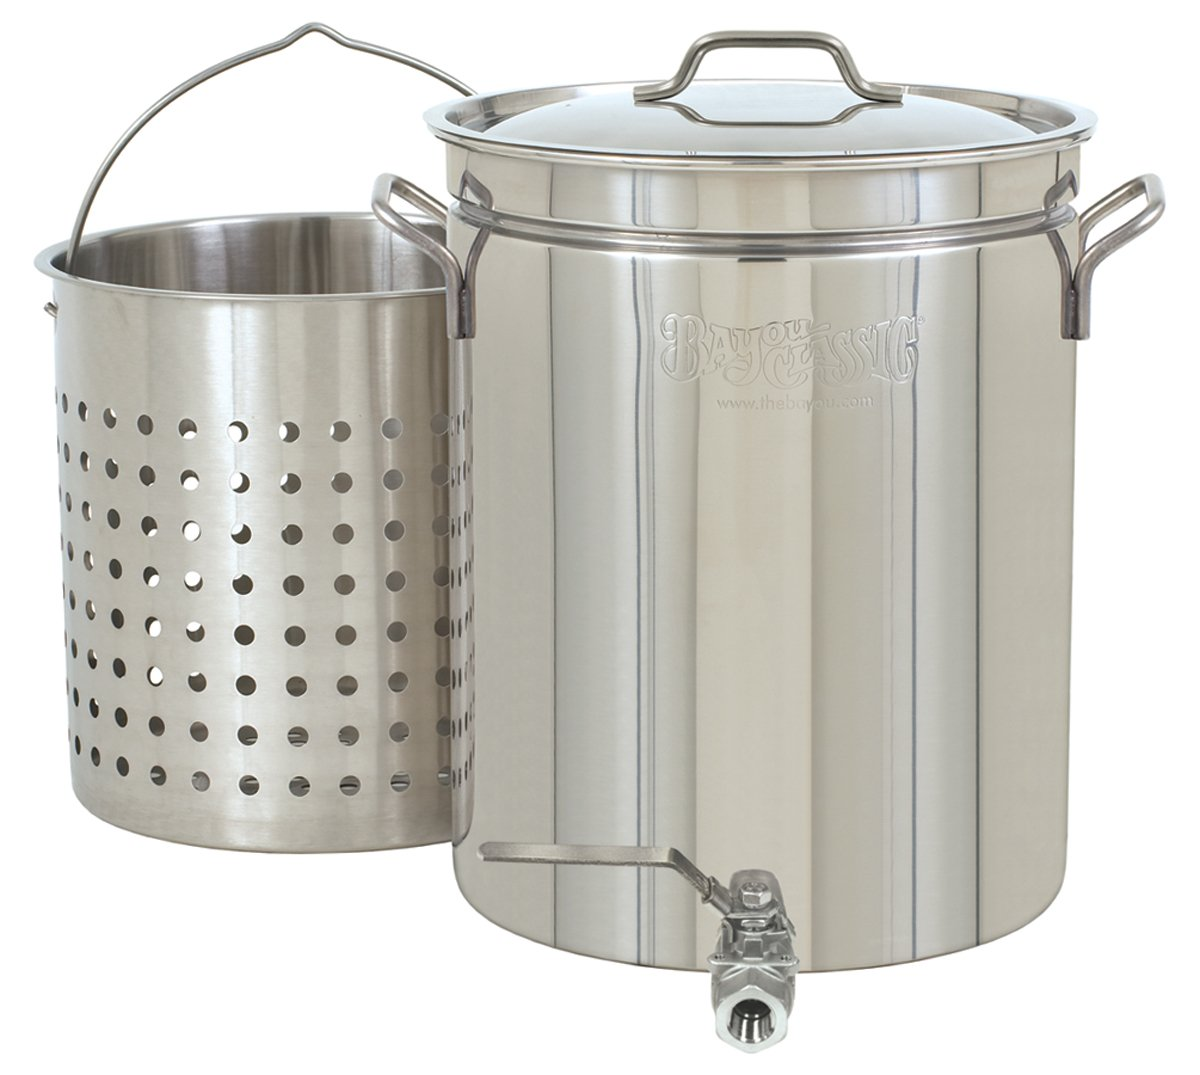 Bayou Classic 1140 Stainless 10-Gallon Steam Boil Stockpot with Spigot Basket and Vented Lid